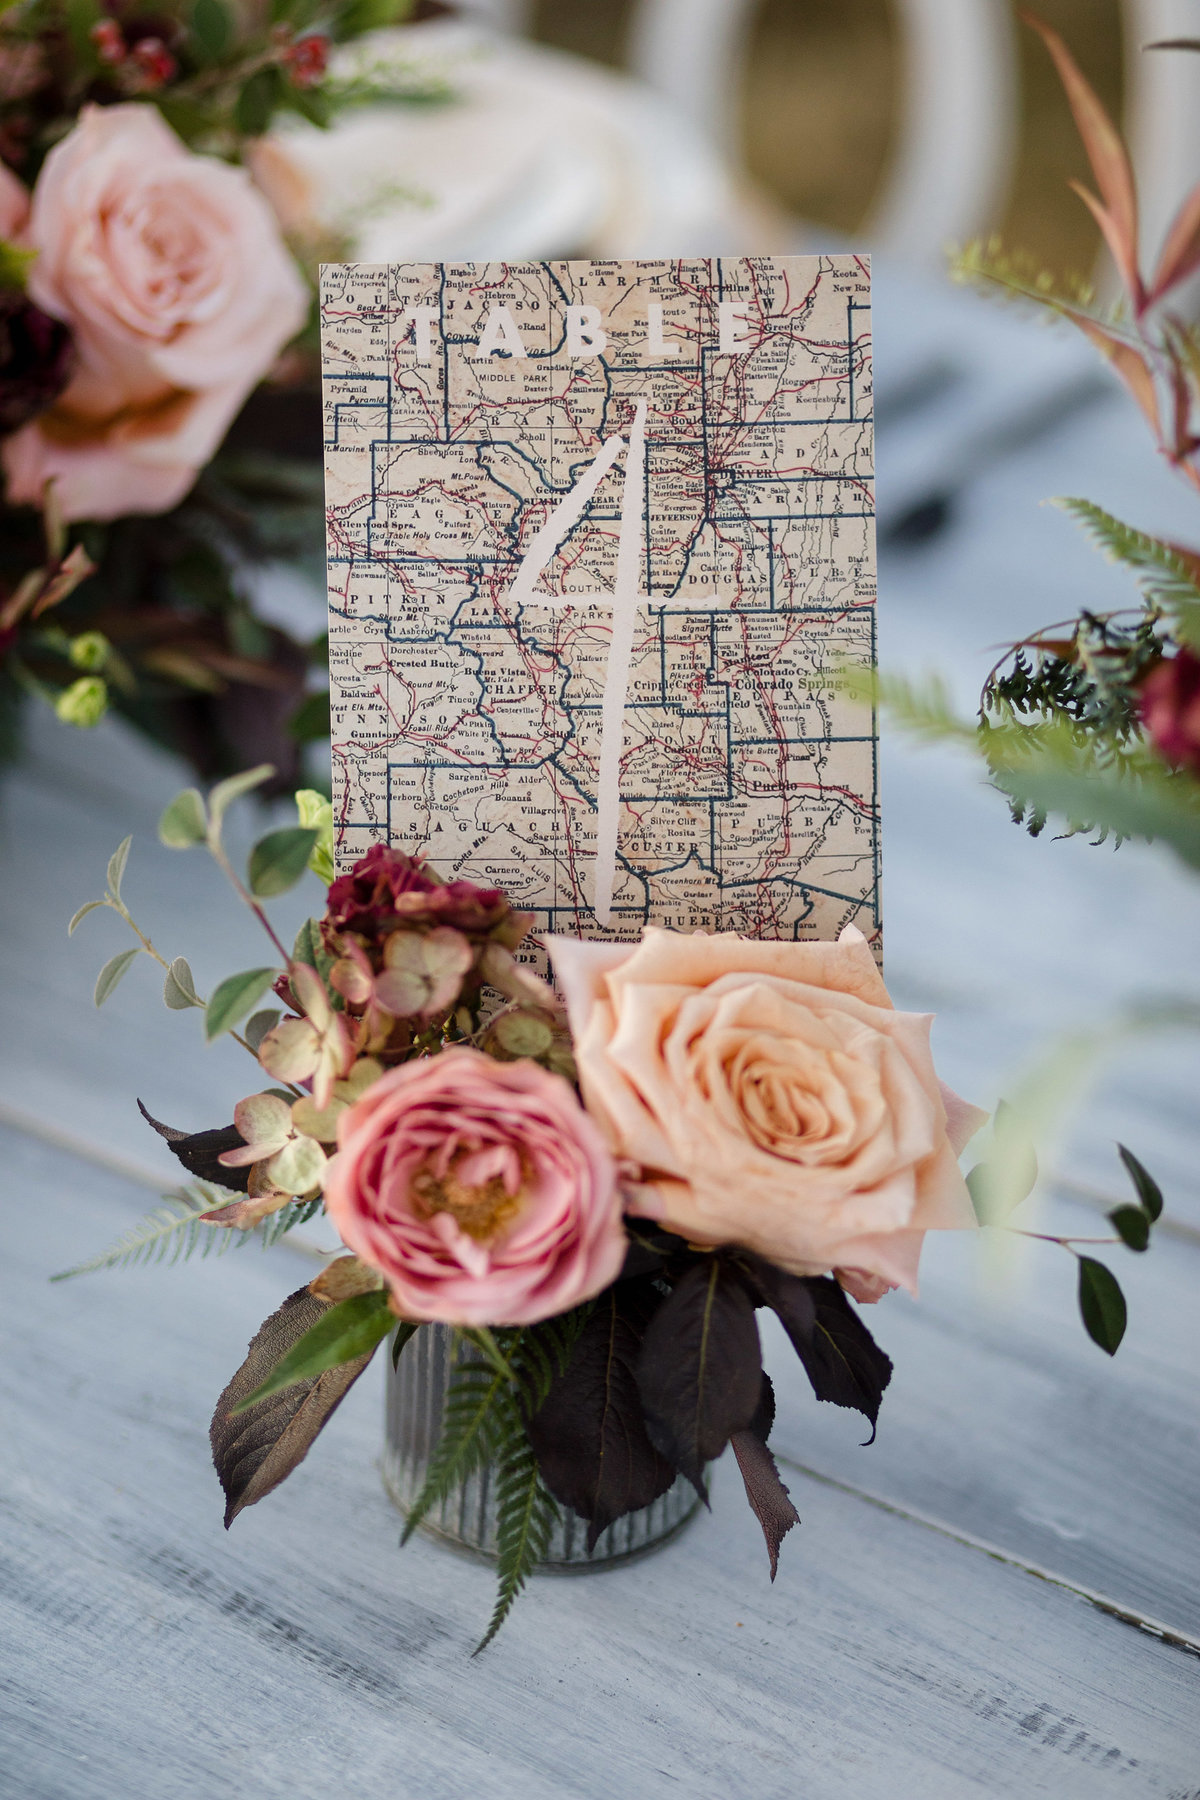 Everett Ranch Weddings  Lucky Onion Stationery Stationary Table Card Vintage Map Salida Colorado Flowers Collegiate Peaks Rustic Ranch Mountain Wedding 015